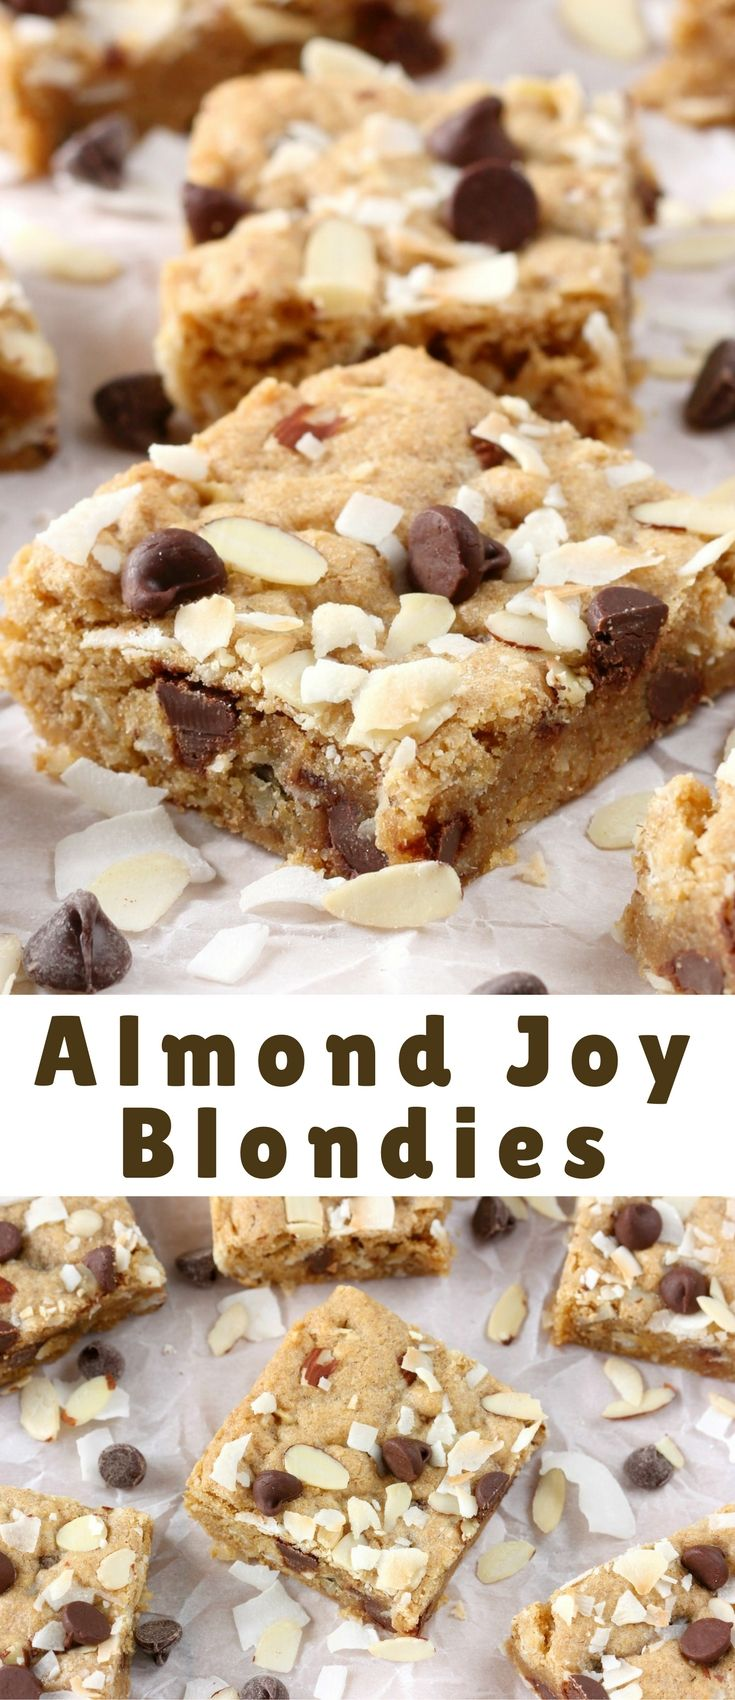 These Almond Joy Blondies are a super easy rich blondie stuffed with all of the flavors of an almond joy bar!